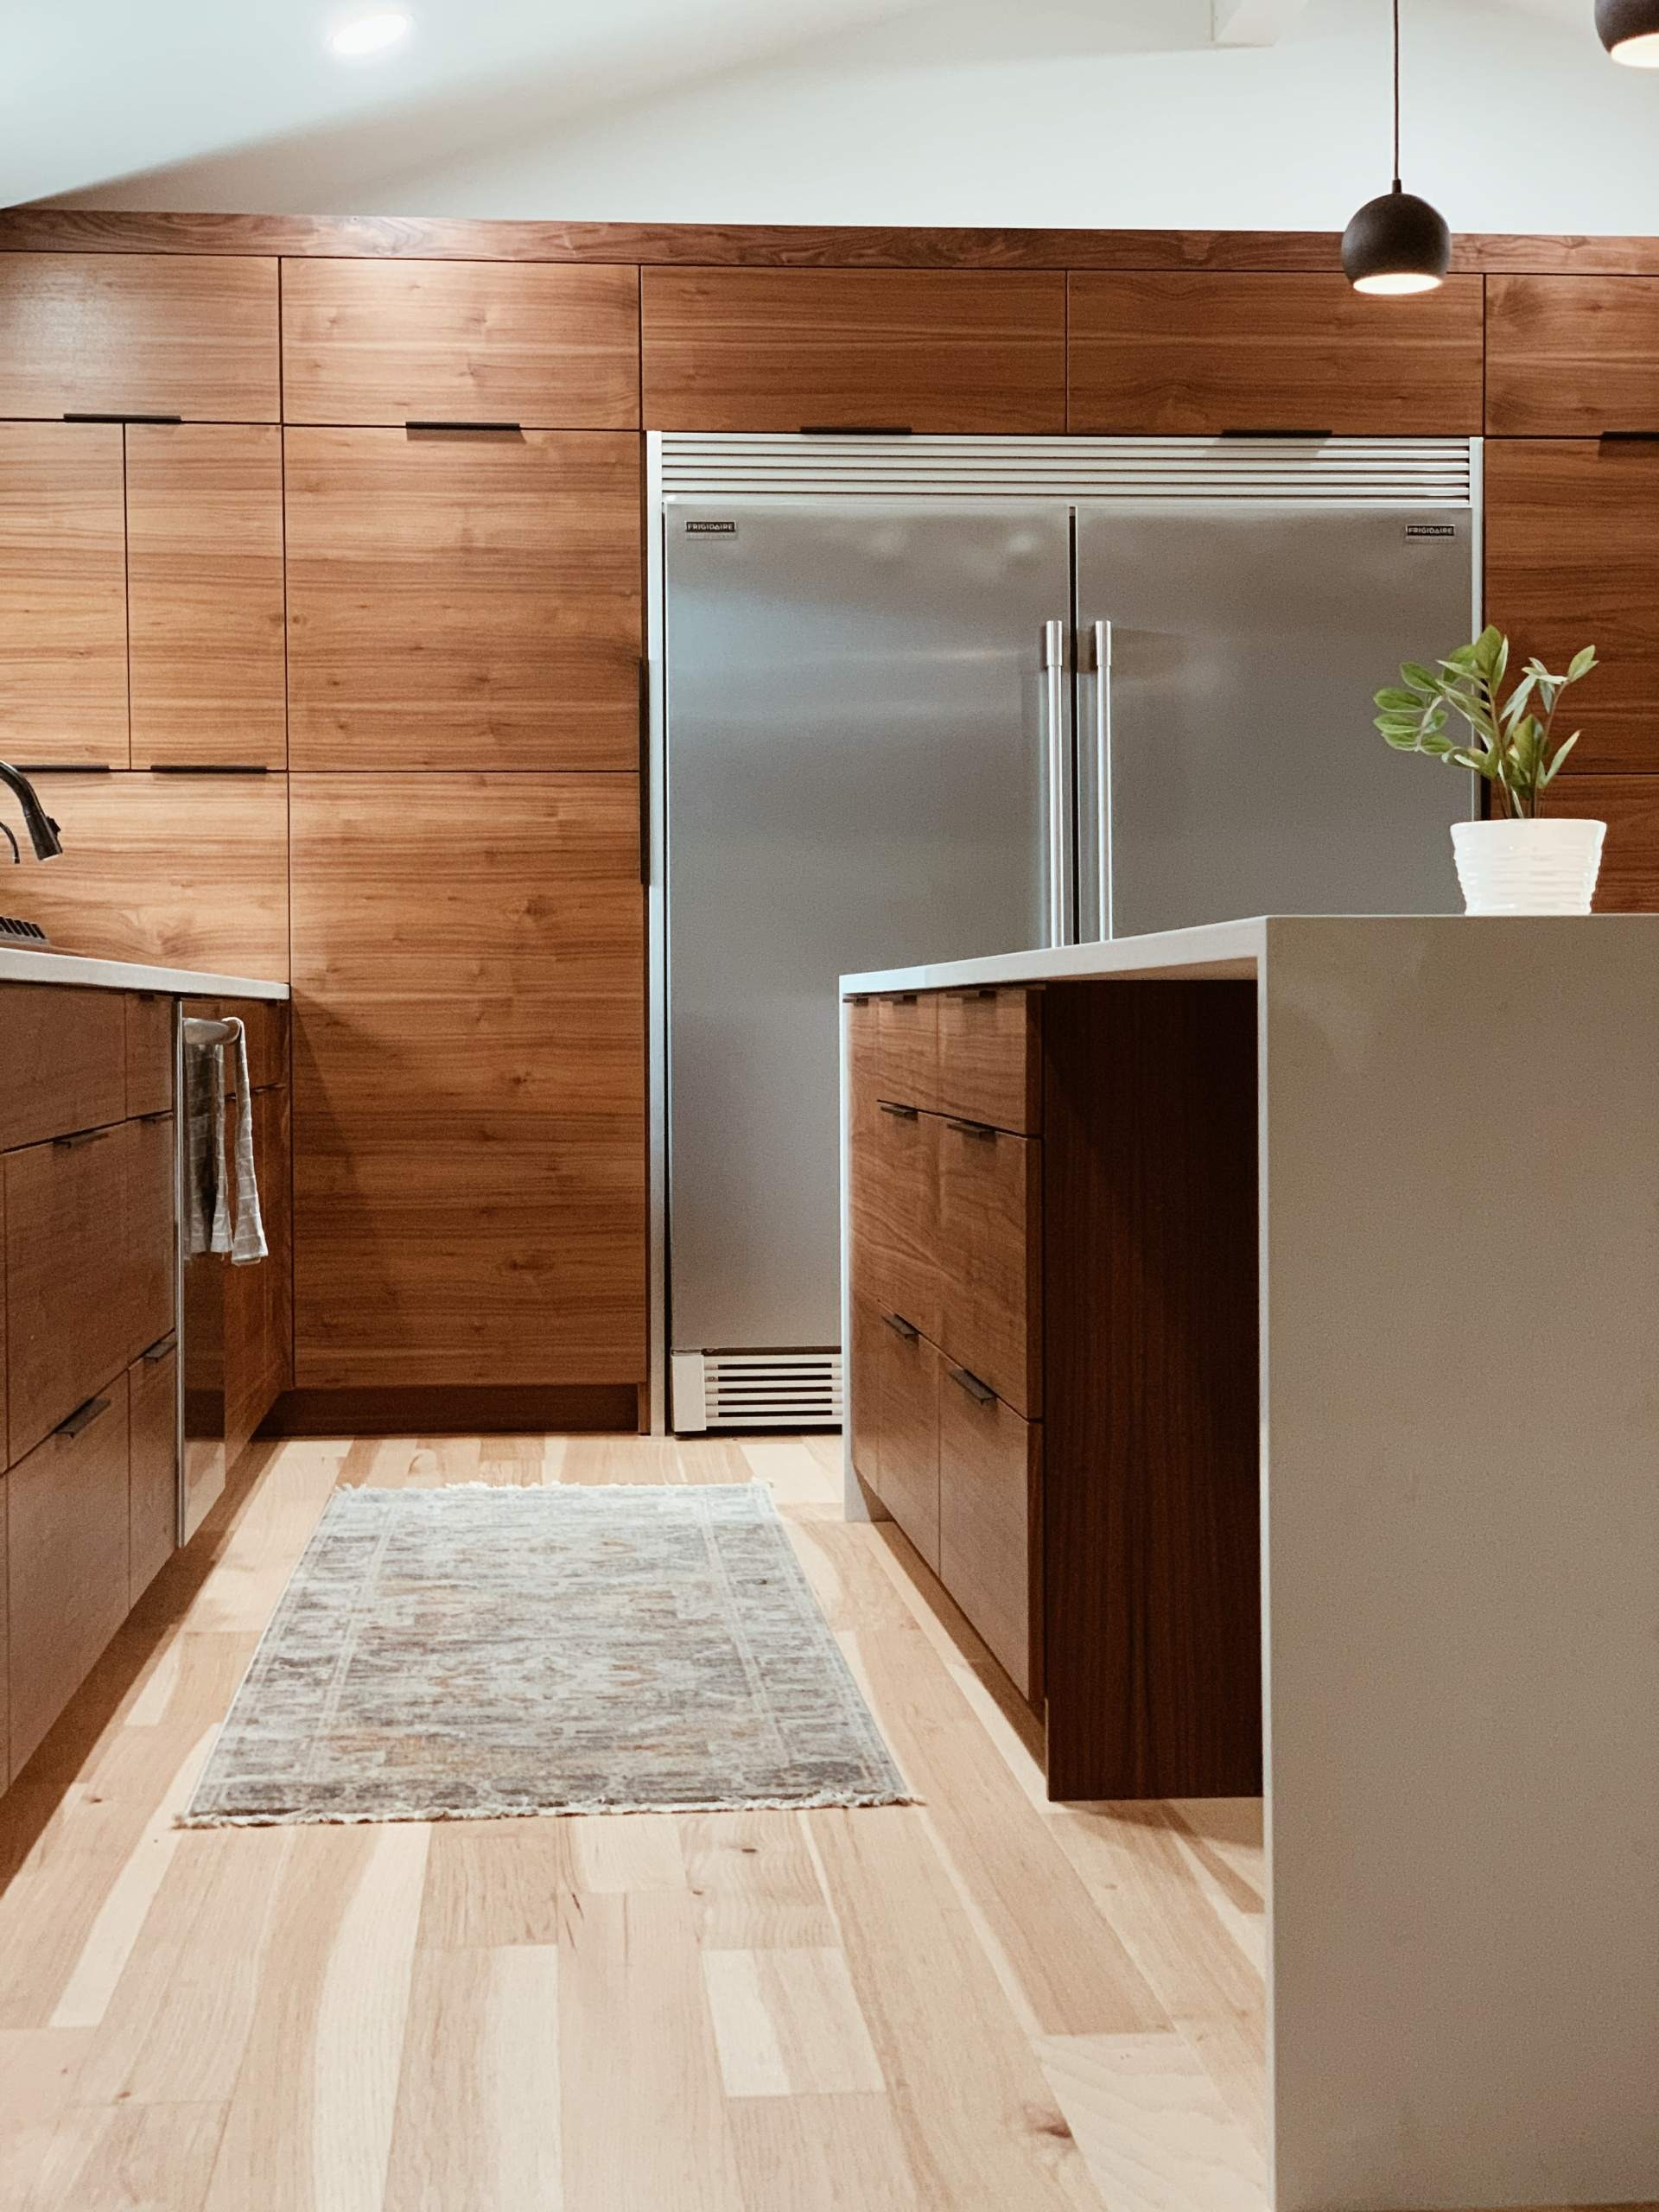 This is an image of kitchen cabinets.